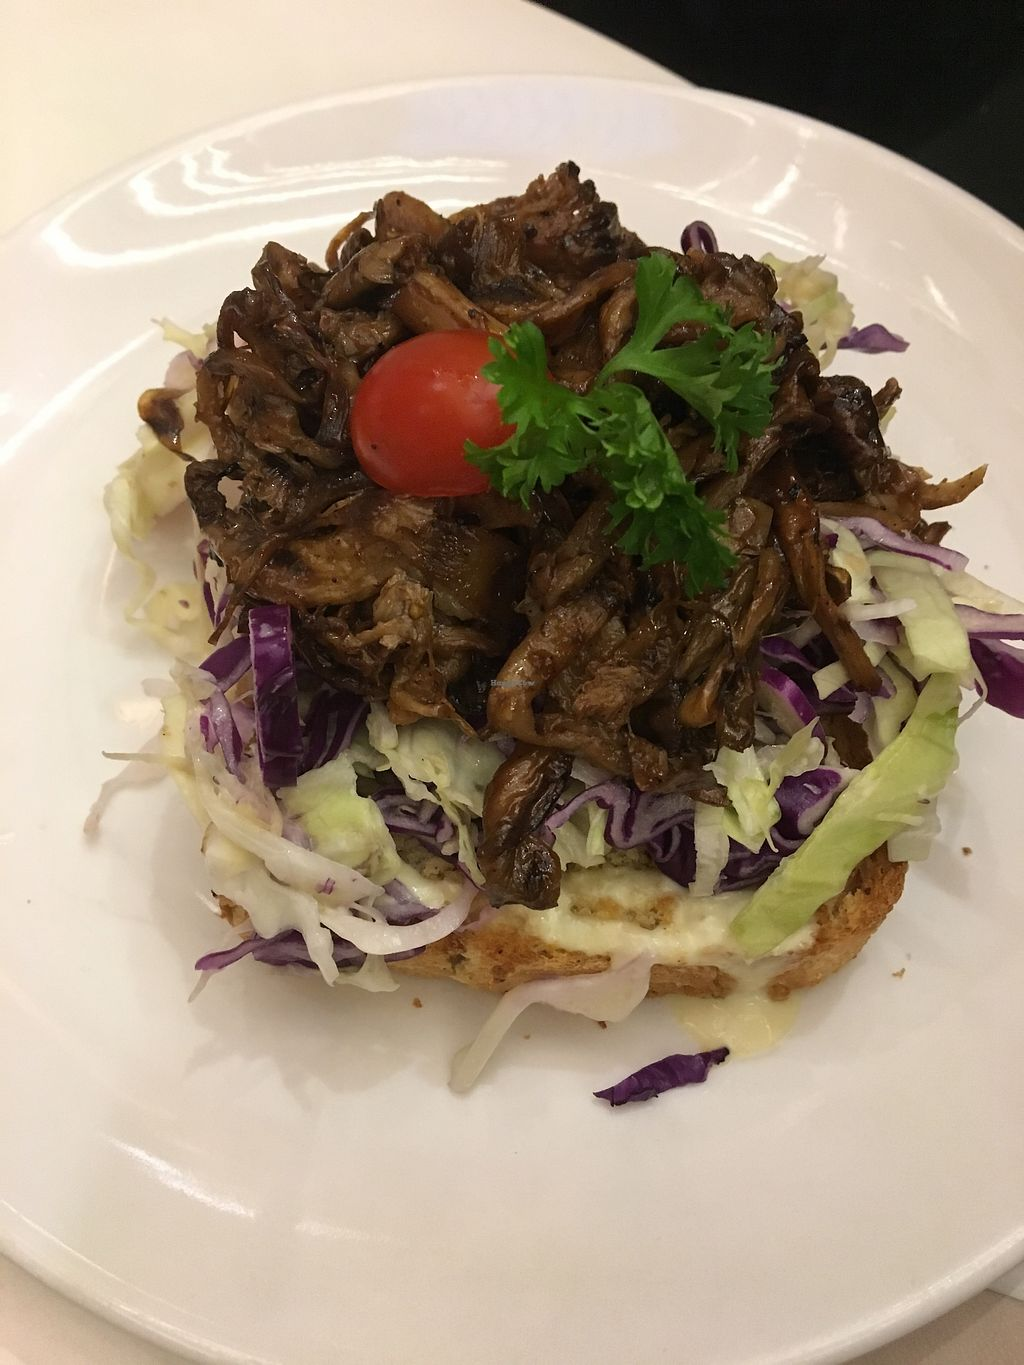 """Photo of Veganerie - Siam Paragon  by <a href=""""/members/profile/sanluvegan"""">sanluvegan</a> <br/>Sandwich with pulled vegan BBQ pork and coleslaw <br/> January 10, 2018  - <a href='/contact/abuse/image/83823/345052'>Report</a>"""